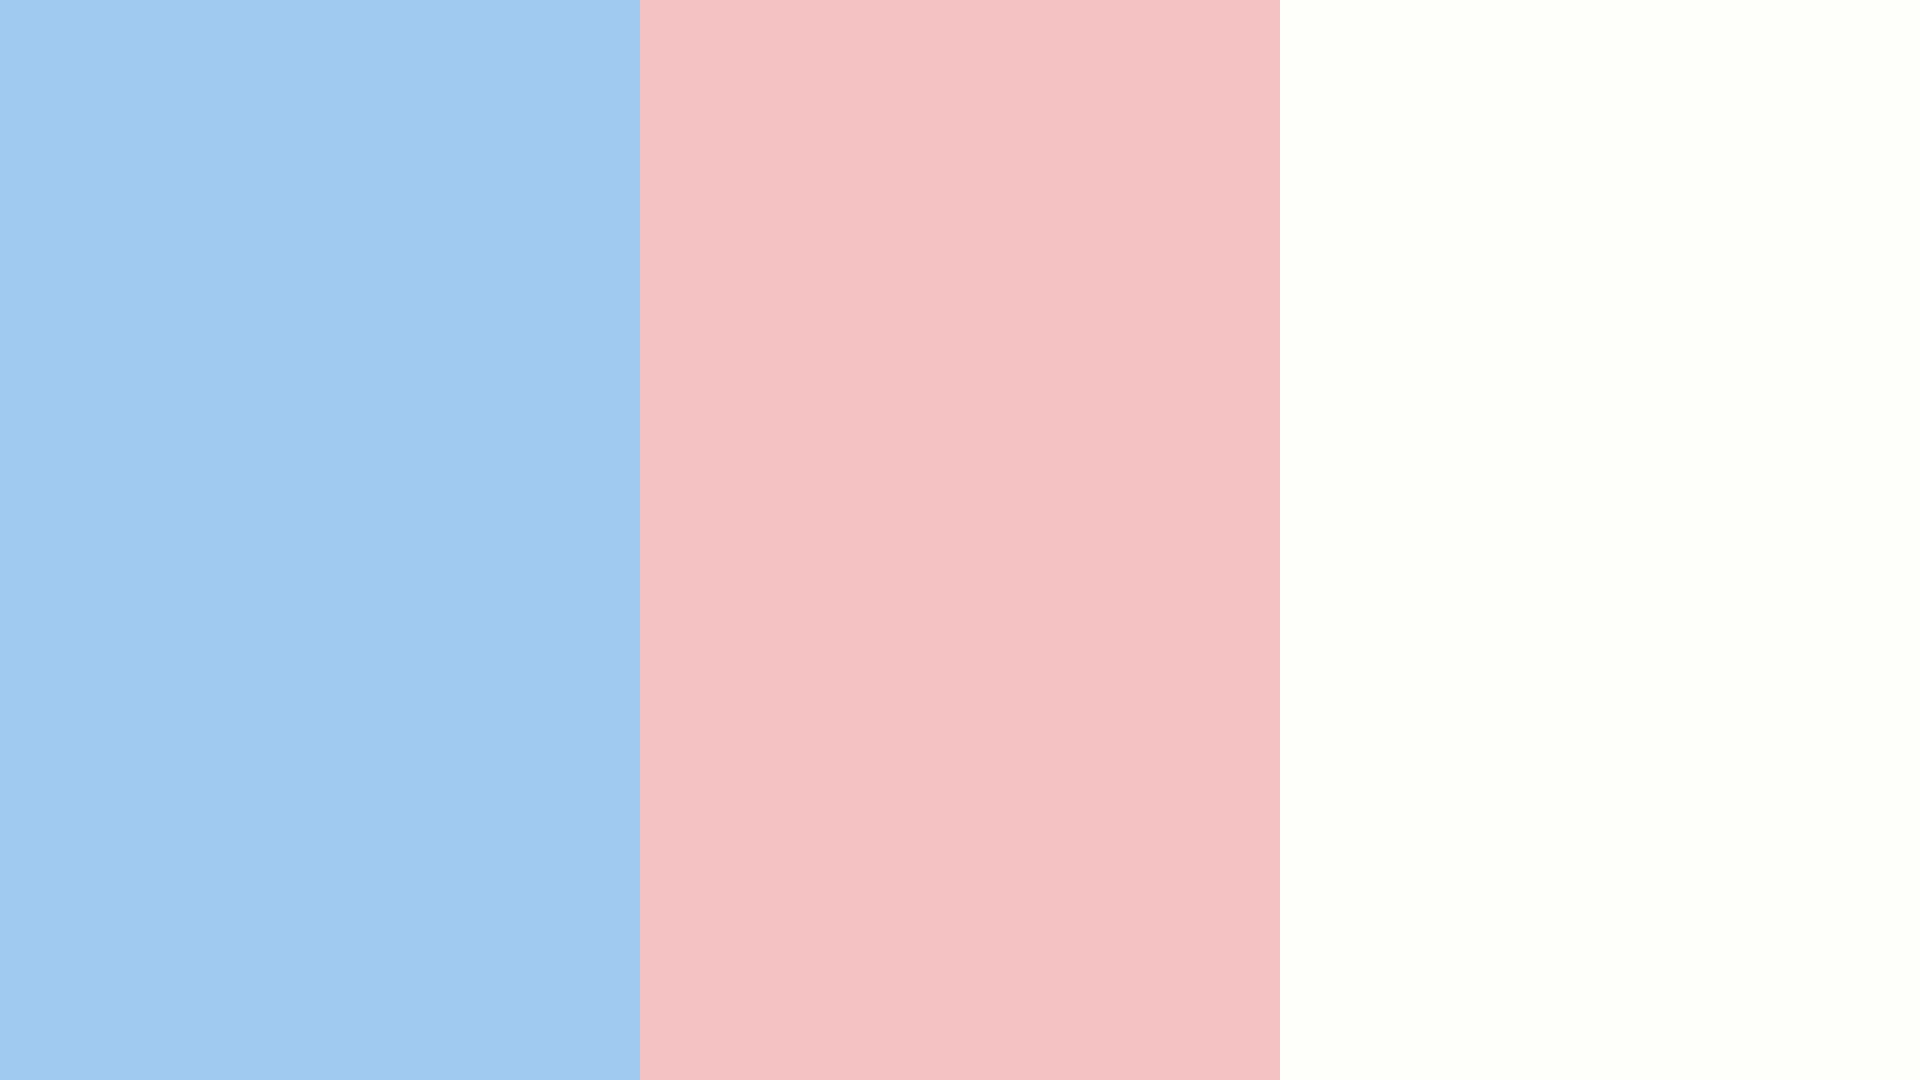 Baby Blue Eyes Baby Pink and Baby Powder Three Color Background 1920x1080